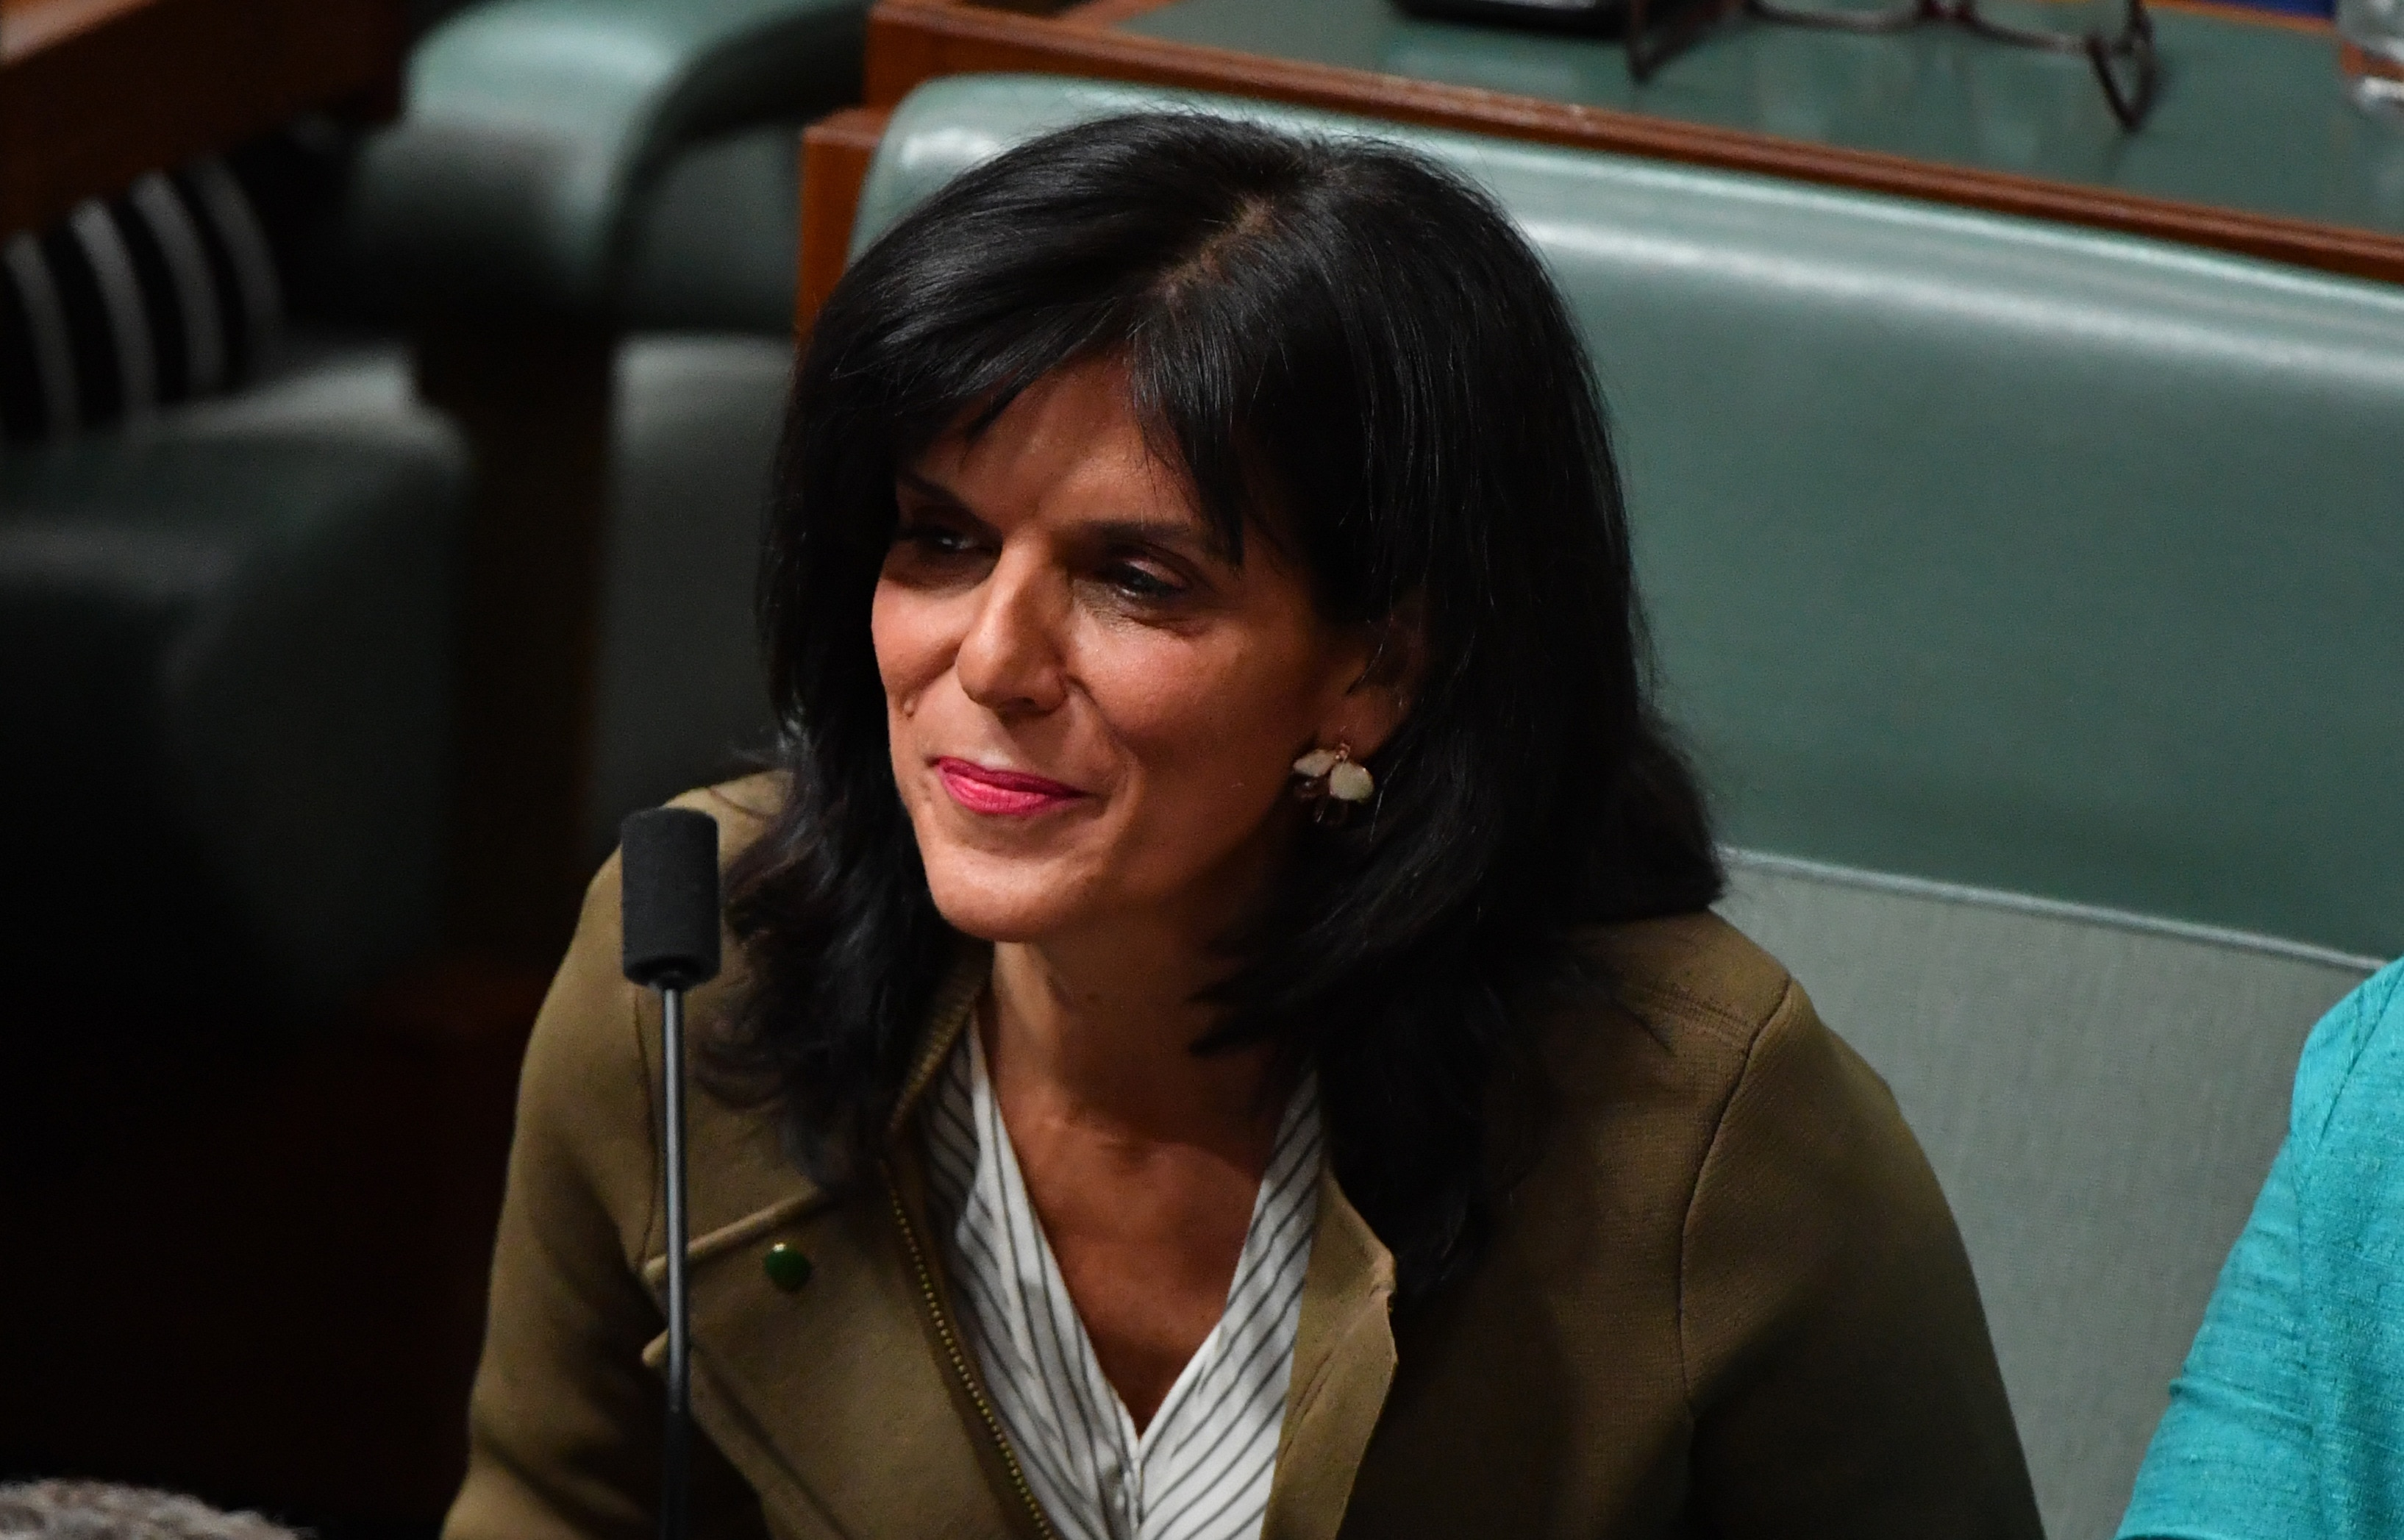 Former Liberal Member for Chisholm Julia Banks during Question Time.